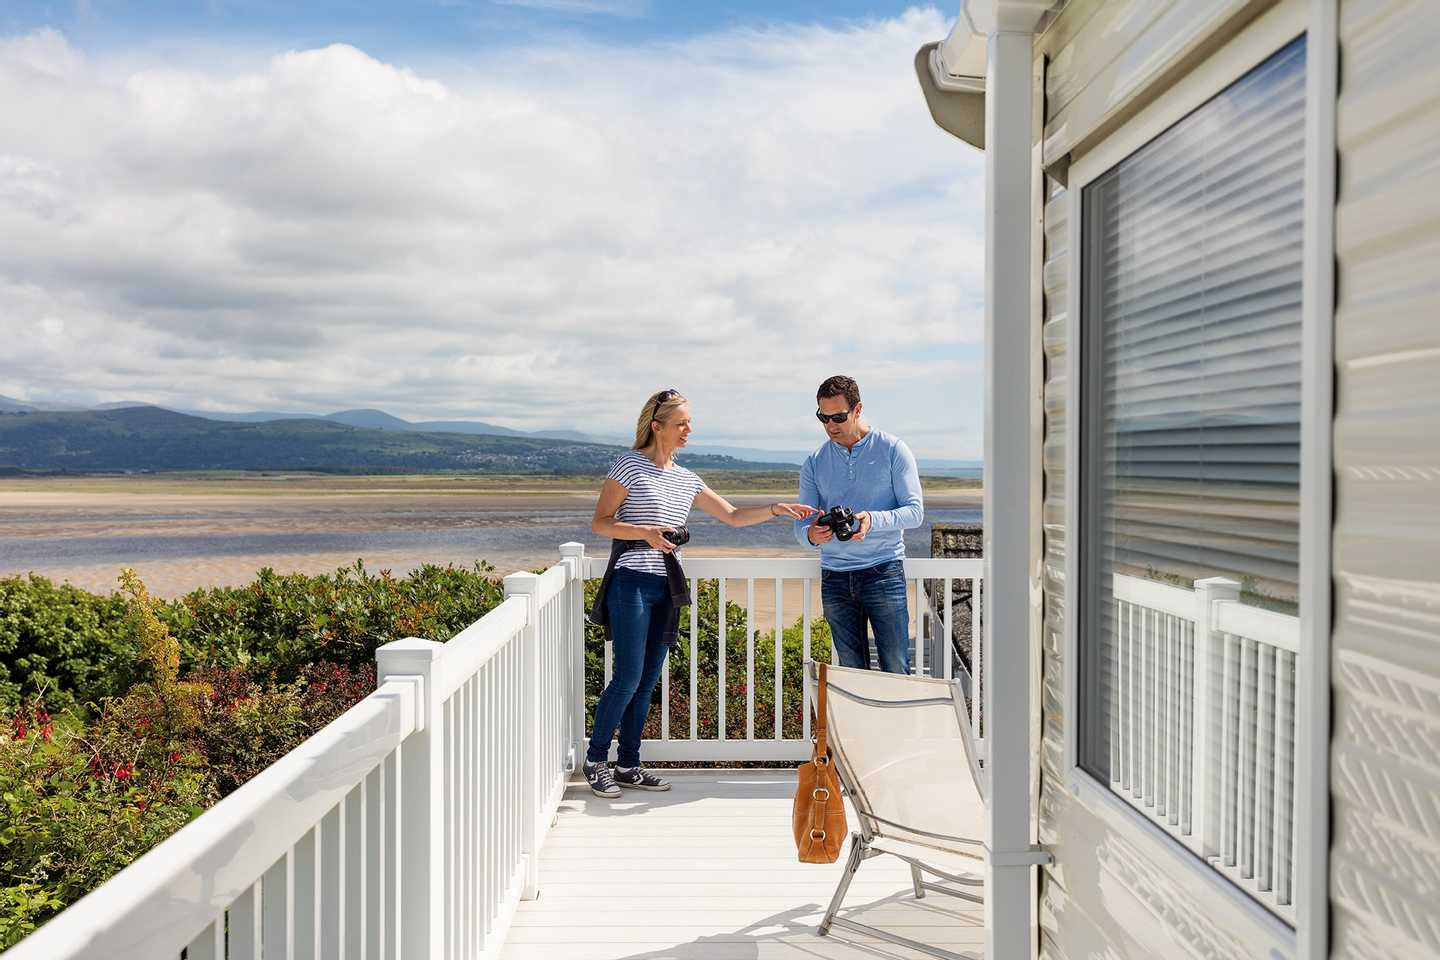 Owners standing on the veranda of their holiday home